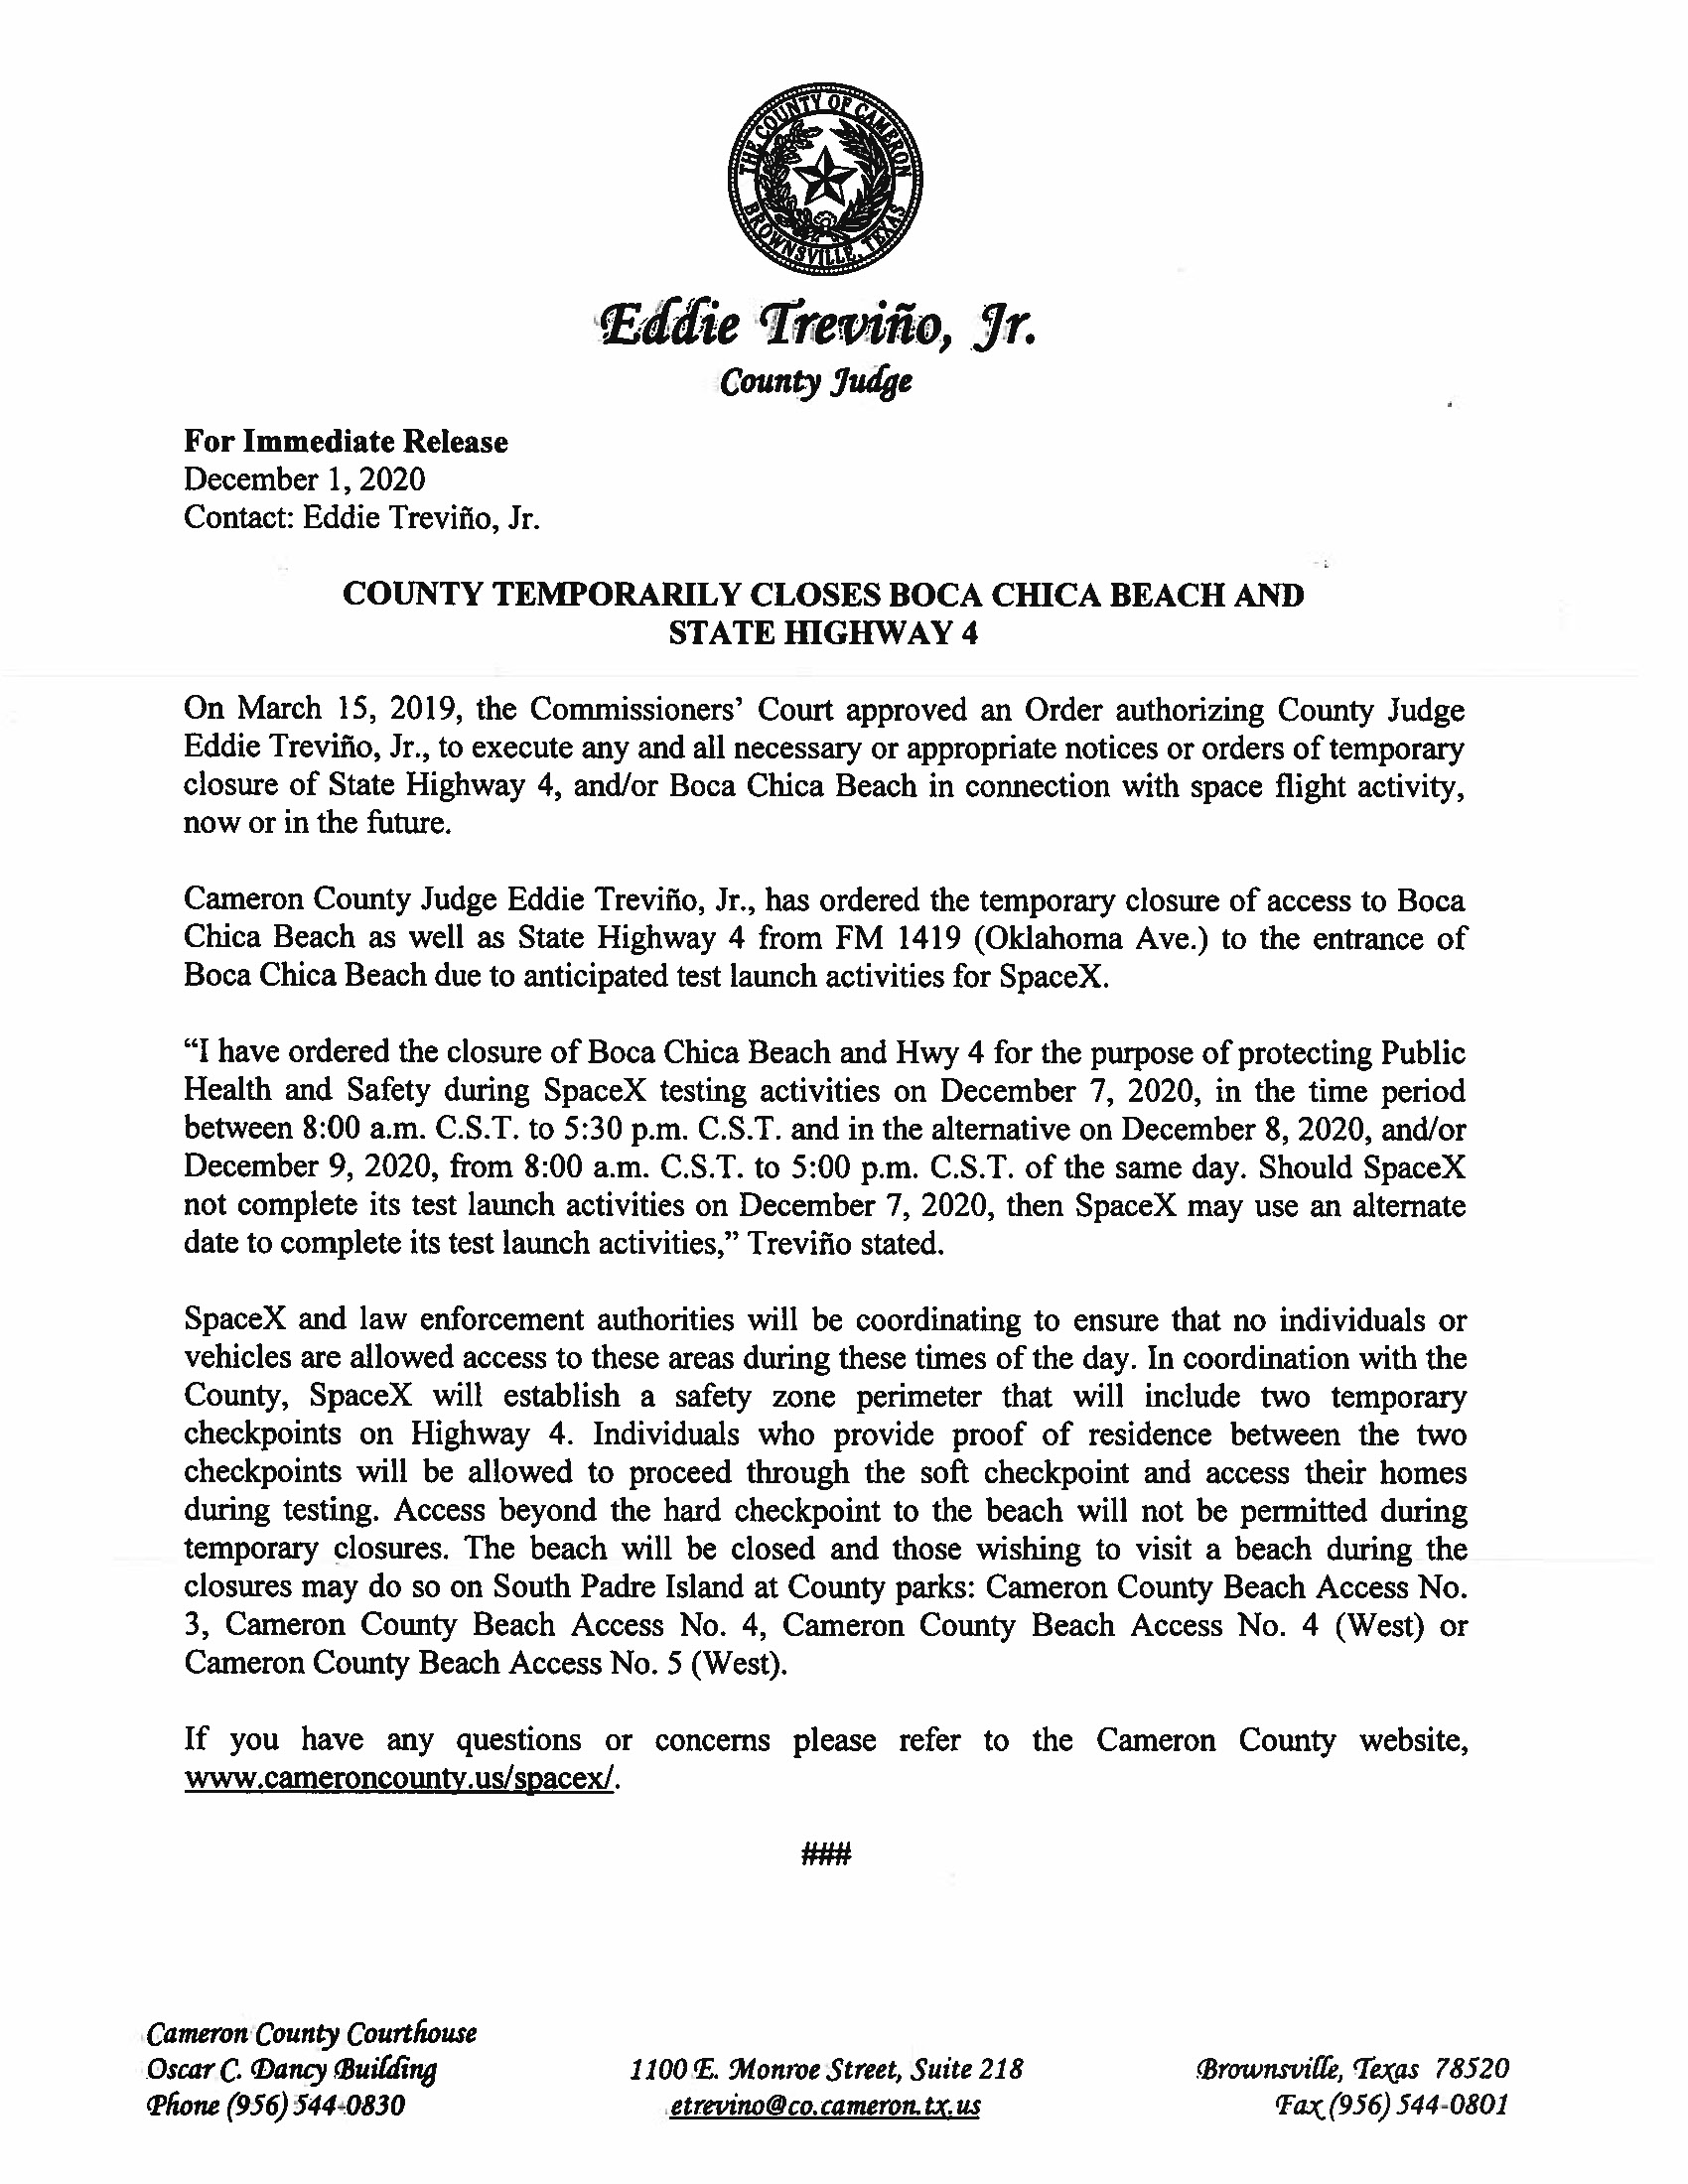 Press Release In English And Spanish.12.07.20 Page 1